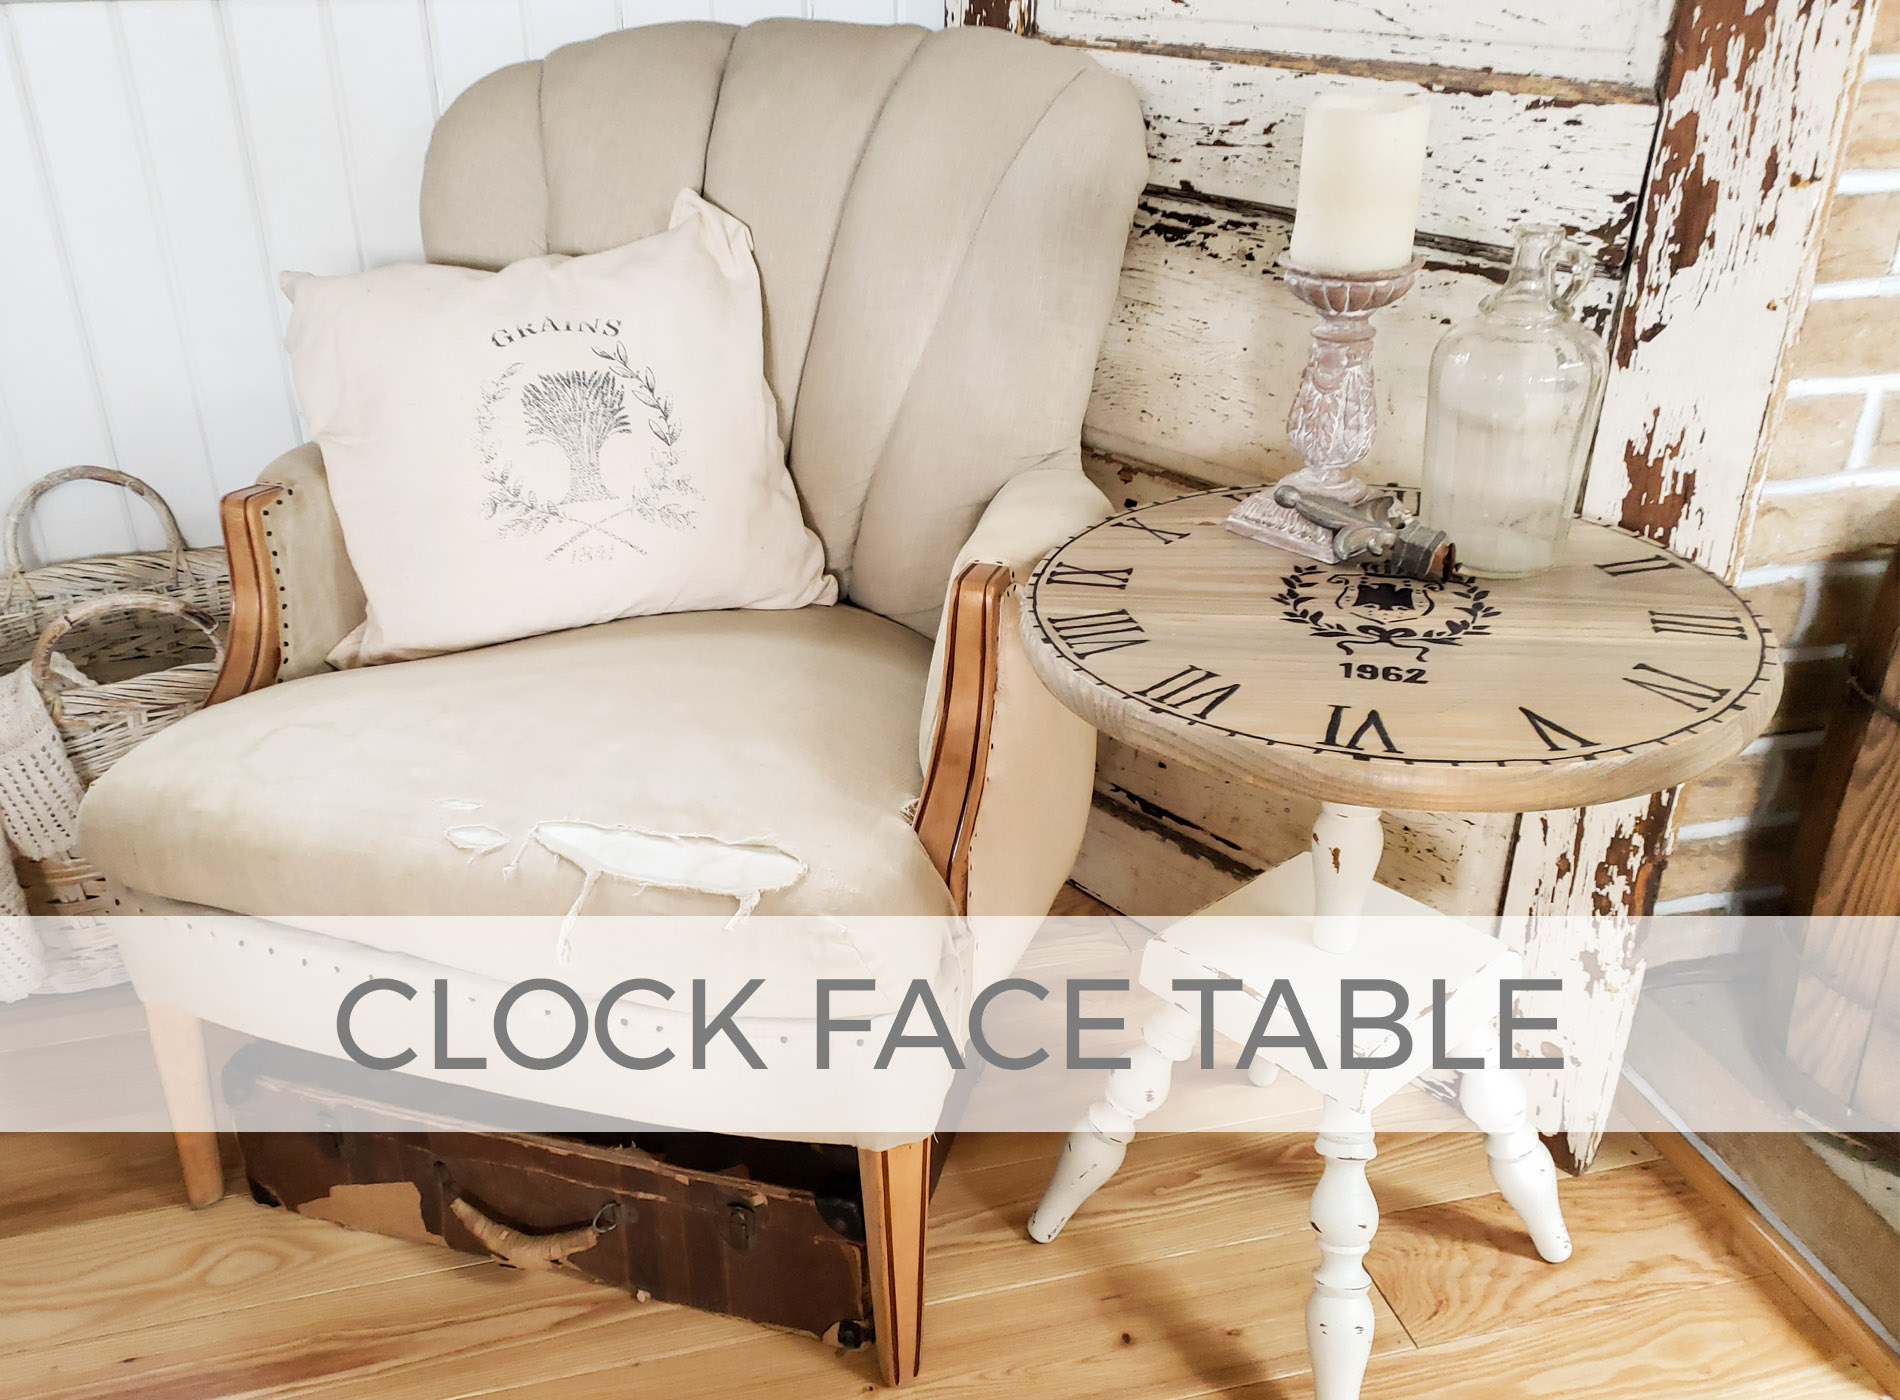 Upcycled Clock Face Table by Larissa of Prodigal Pieces | prodigalpieces.com